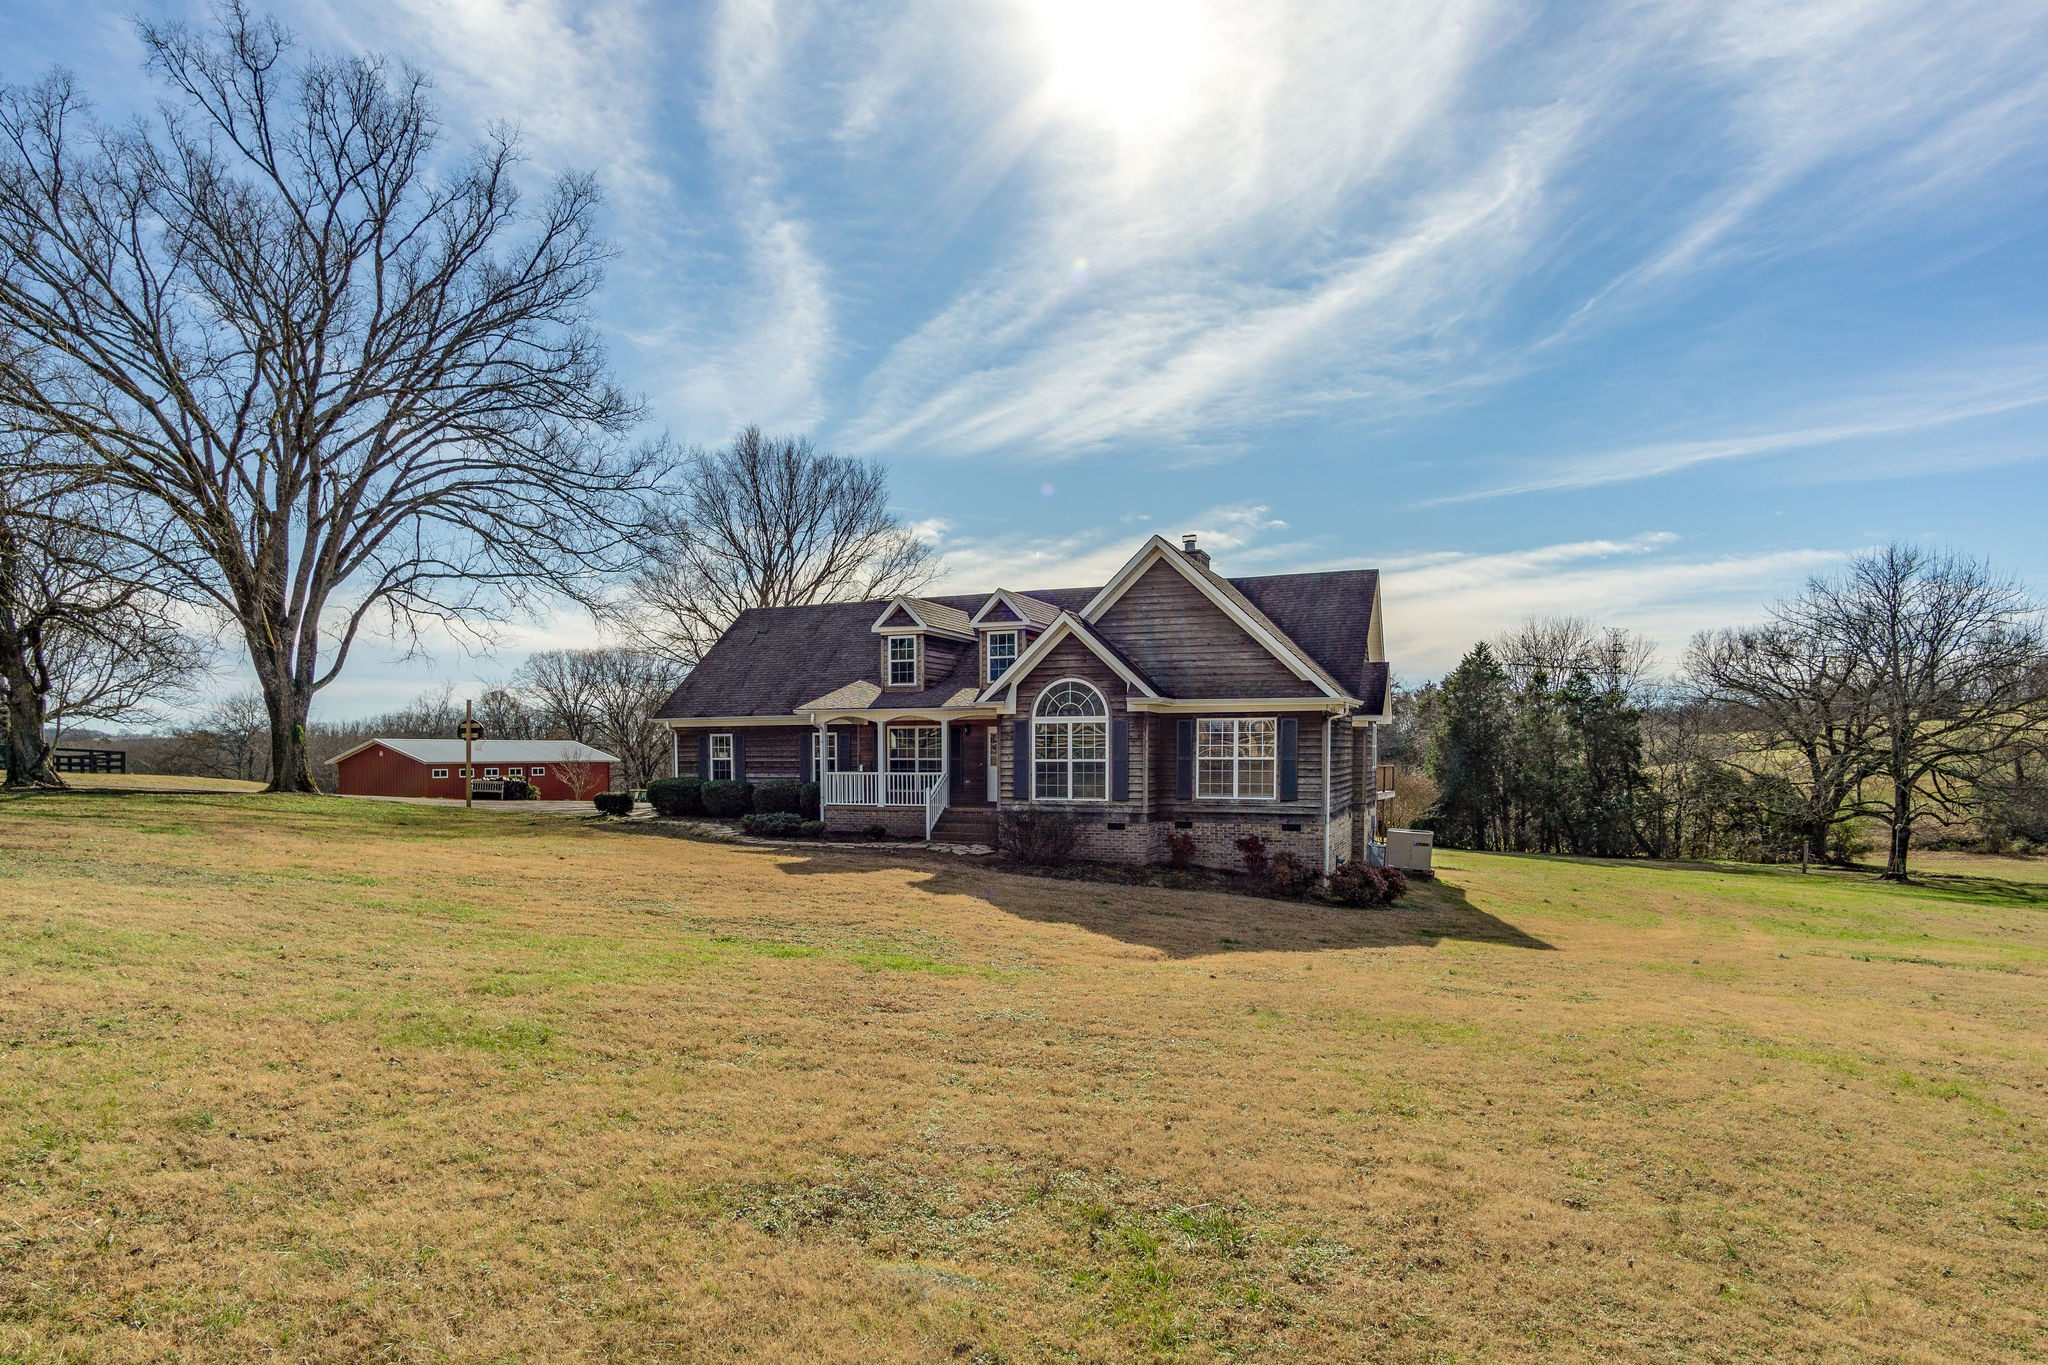 2352 Darks Mill Rd 38401 - One of Columbia Homes for Sale